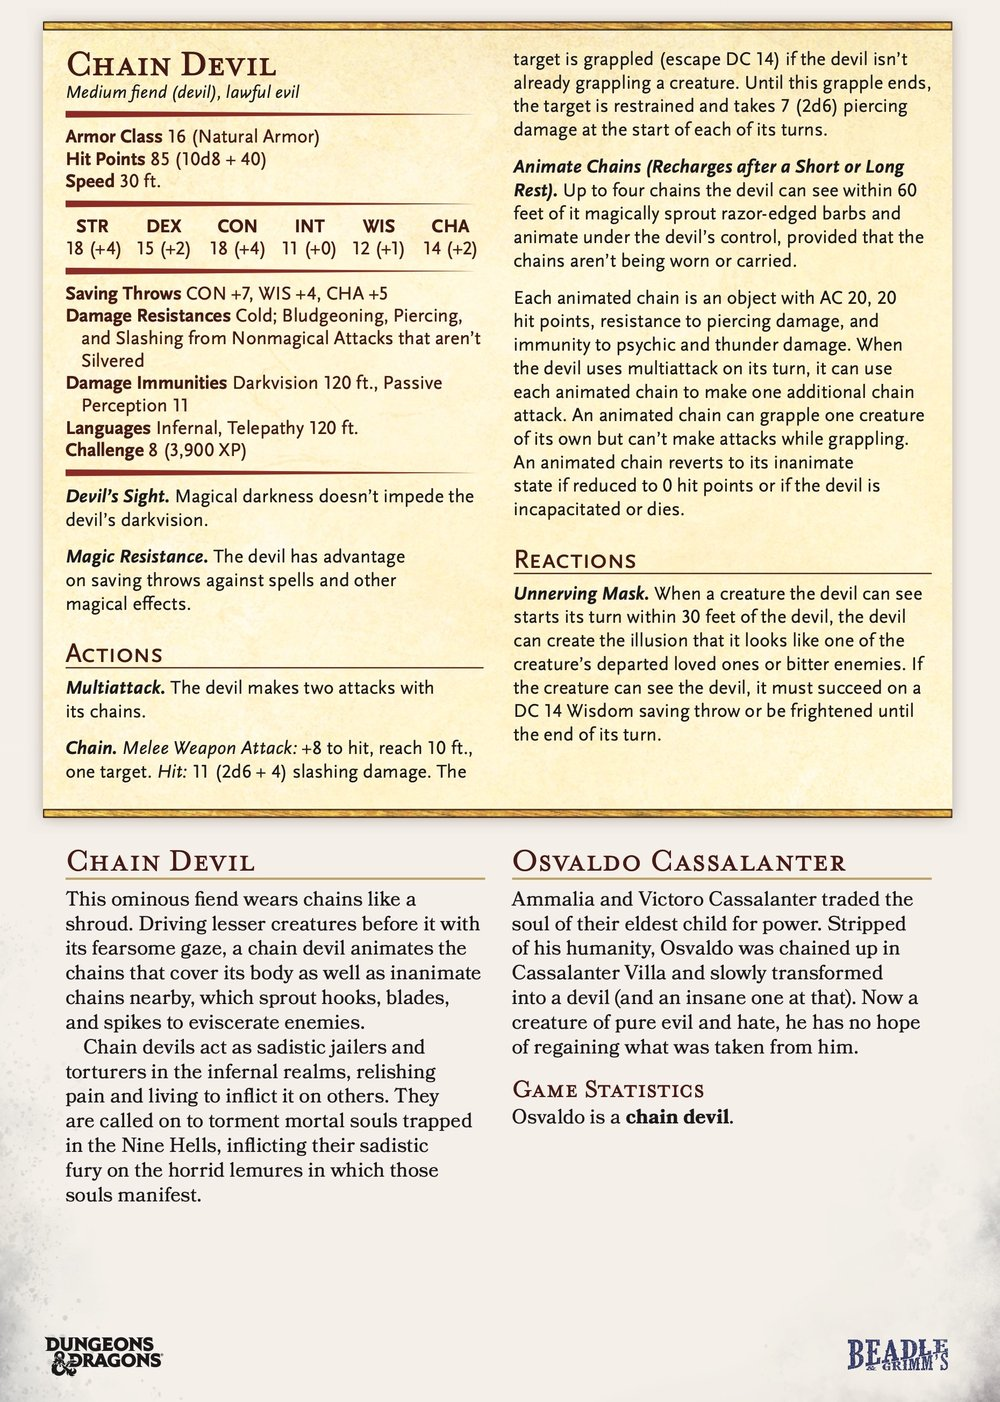 Encounter_card-Chain_Devil_(Cassalanter) 2_lower.jpeg